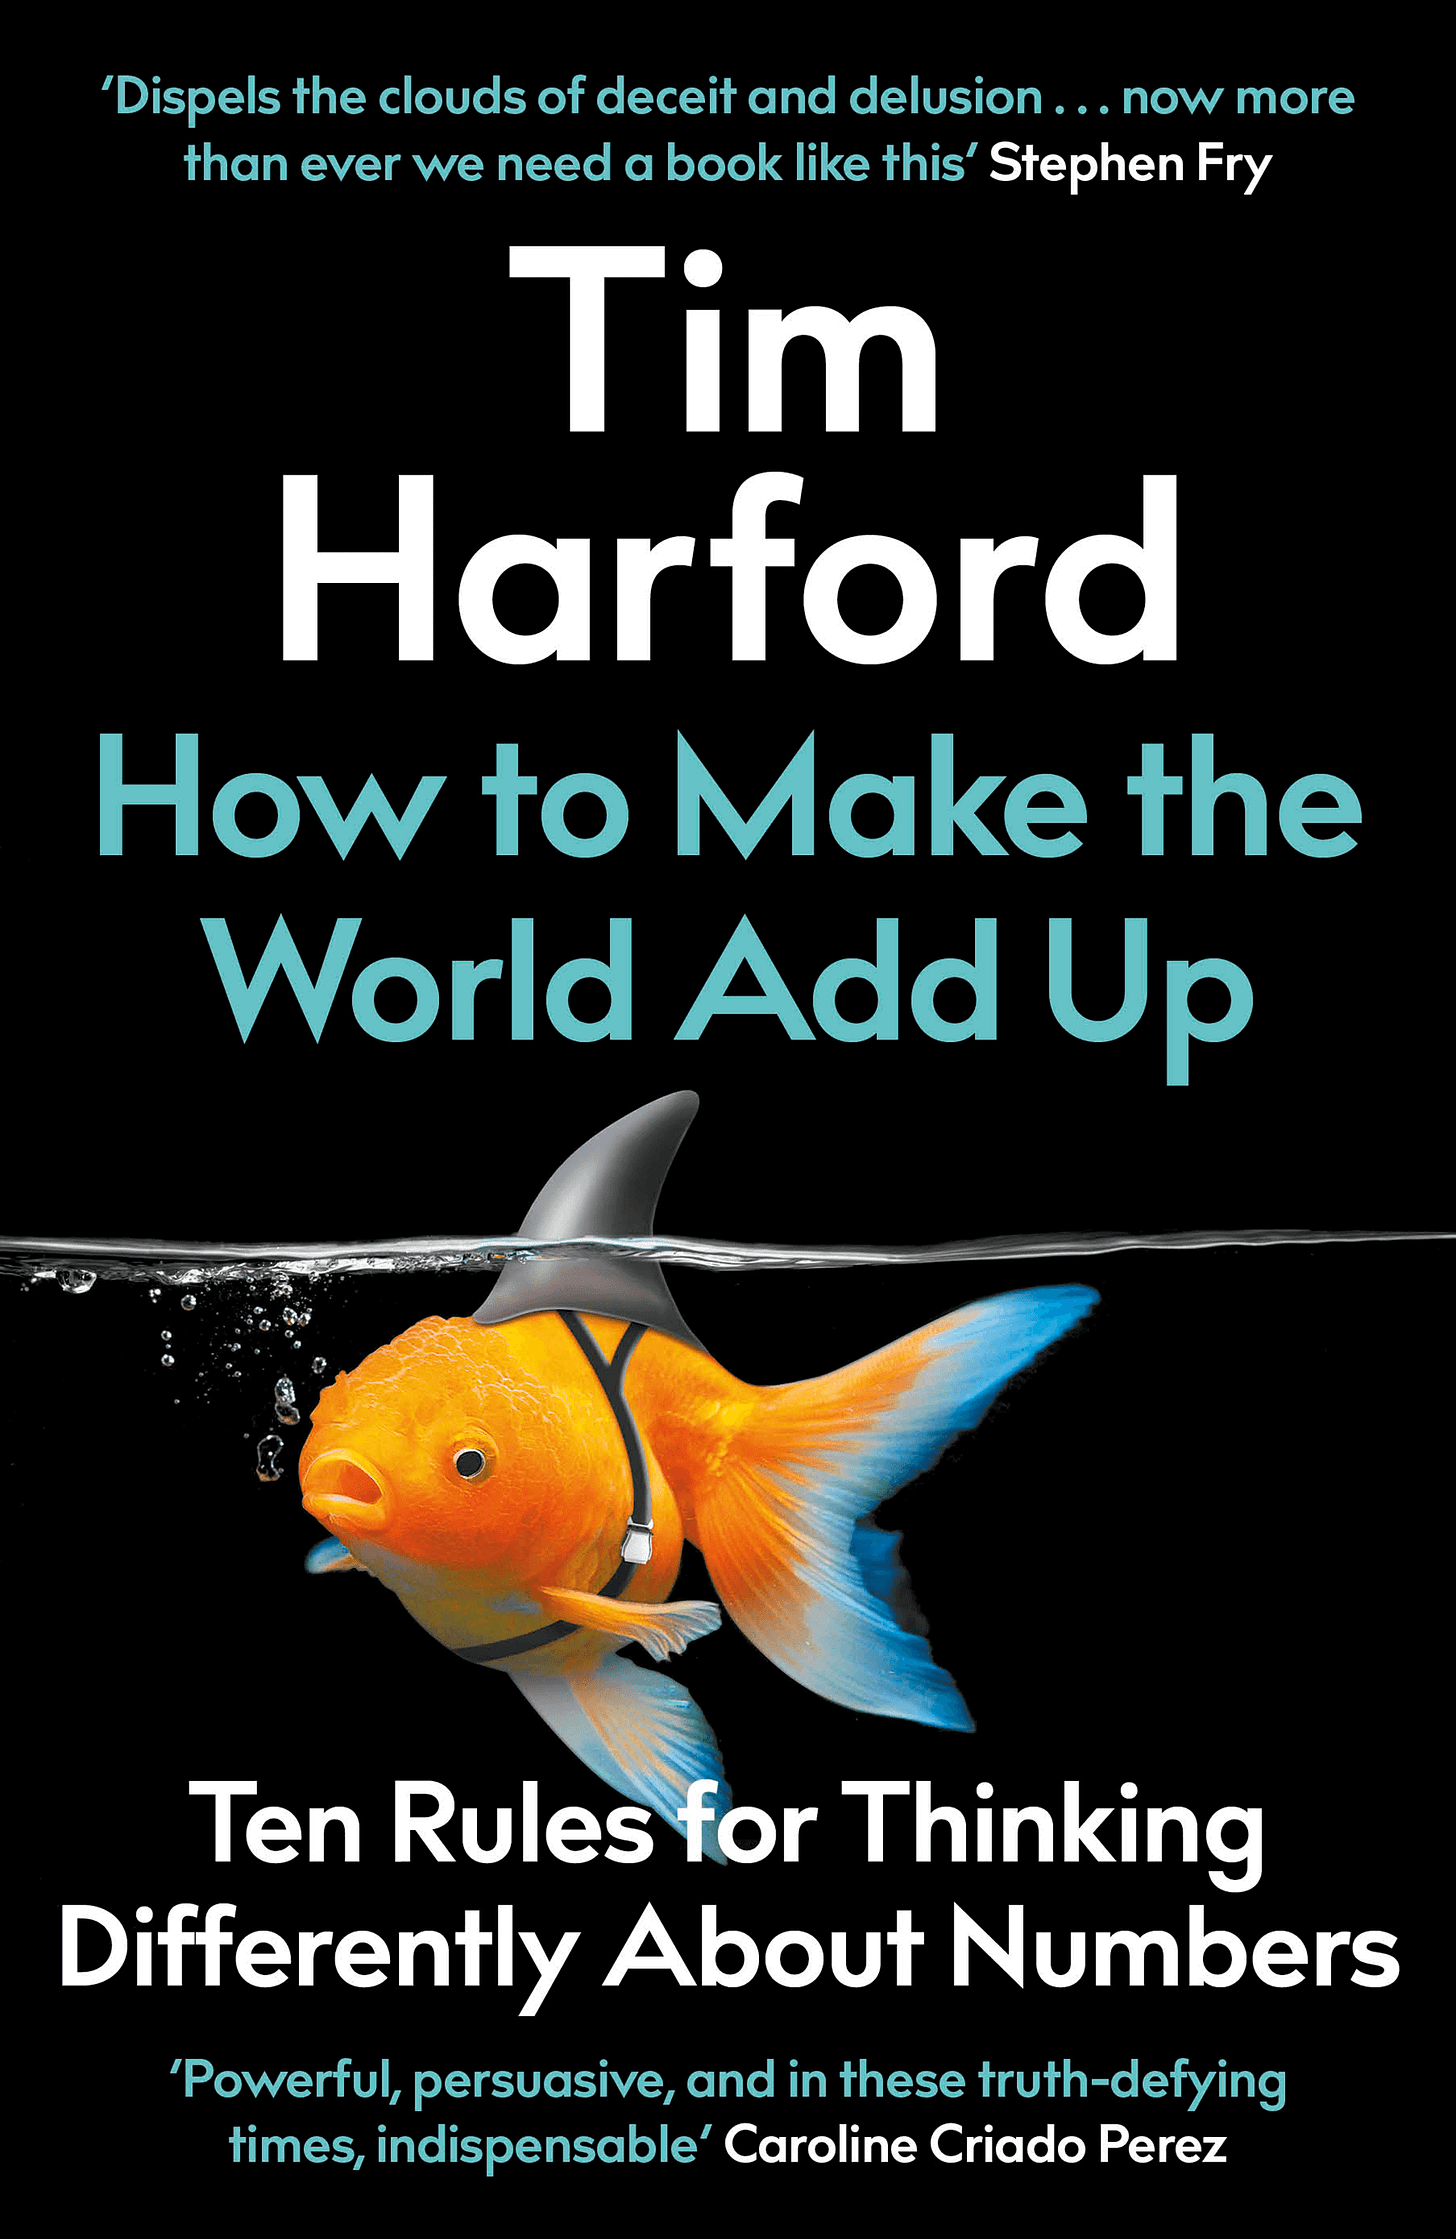 How to Make the World Add Up – Ten Rules for Thinking Differently About Numbers